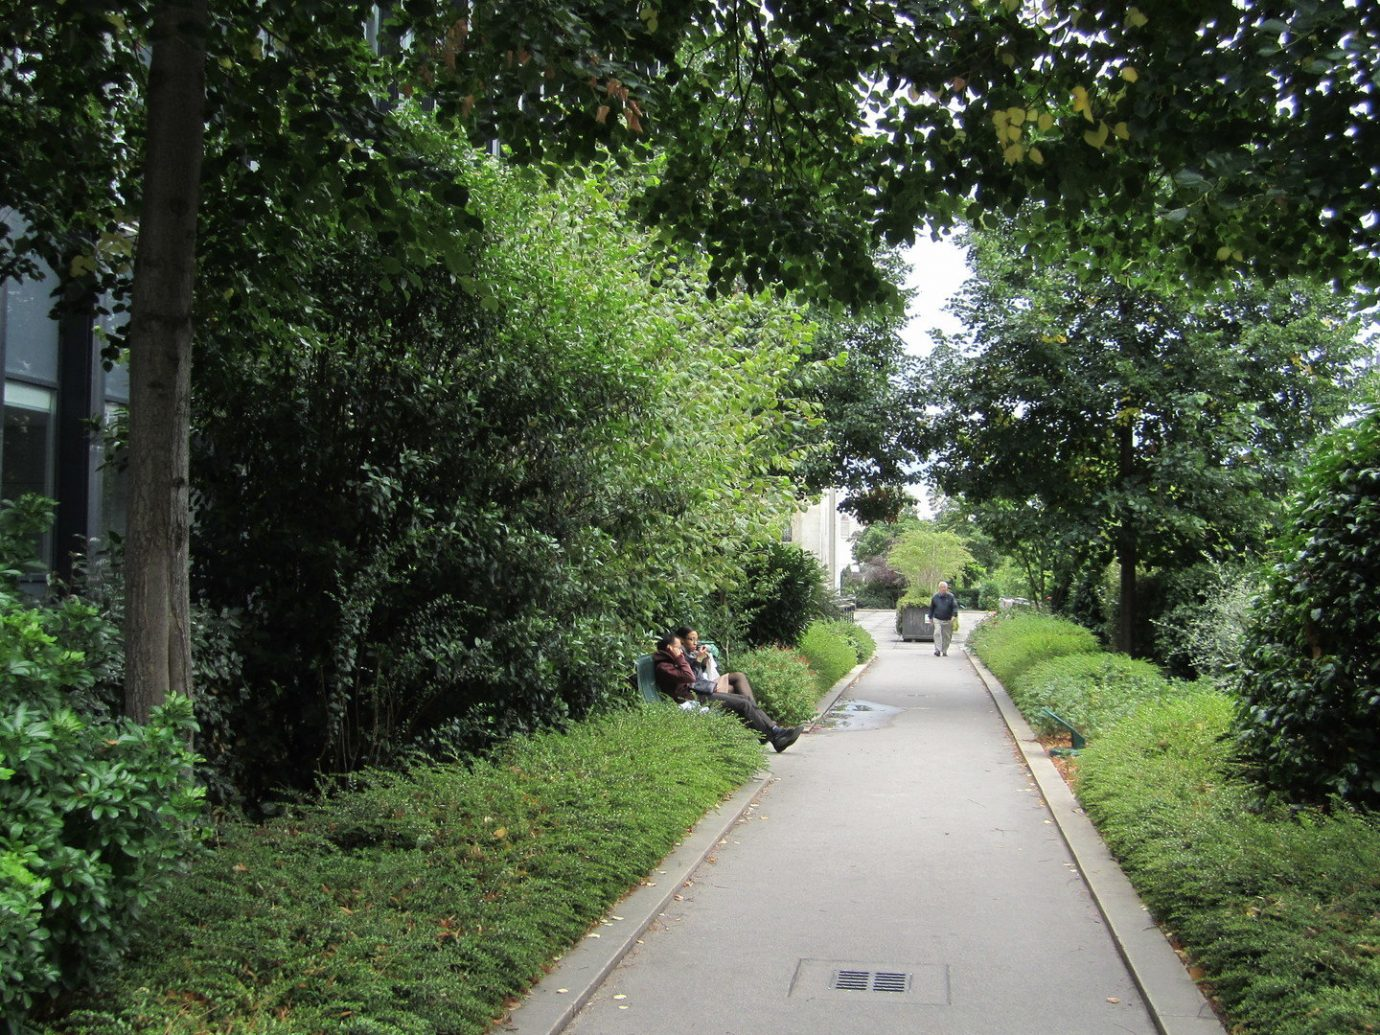 city park Garden Greenery isolation Nature park path people remote trees Trip Ideas tree grass outdoor transport waterway rolling stock way Canal walkway trail